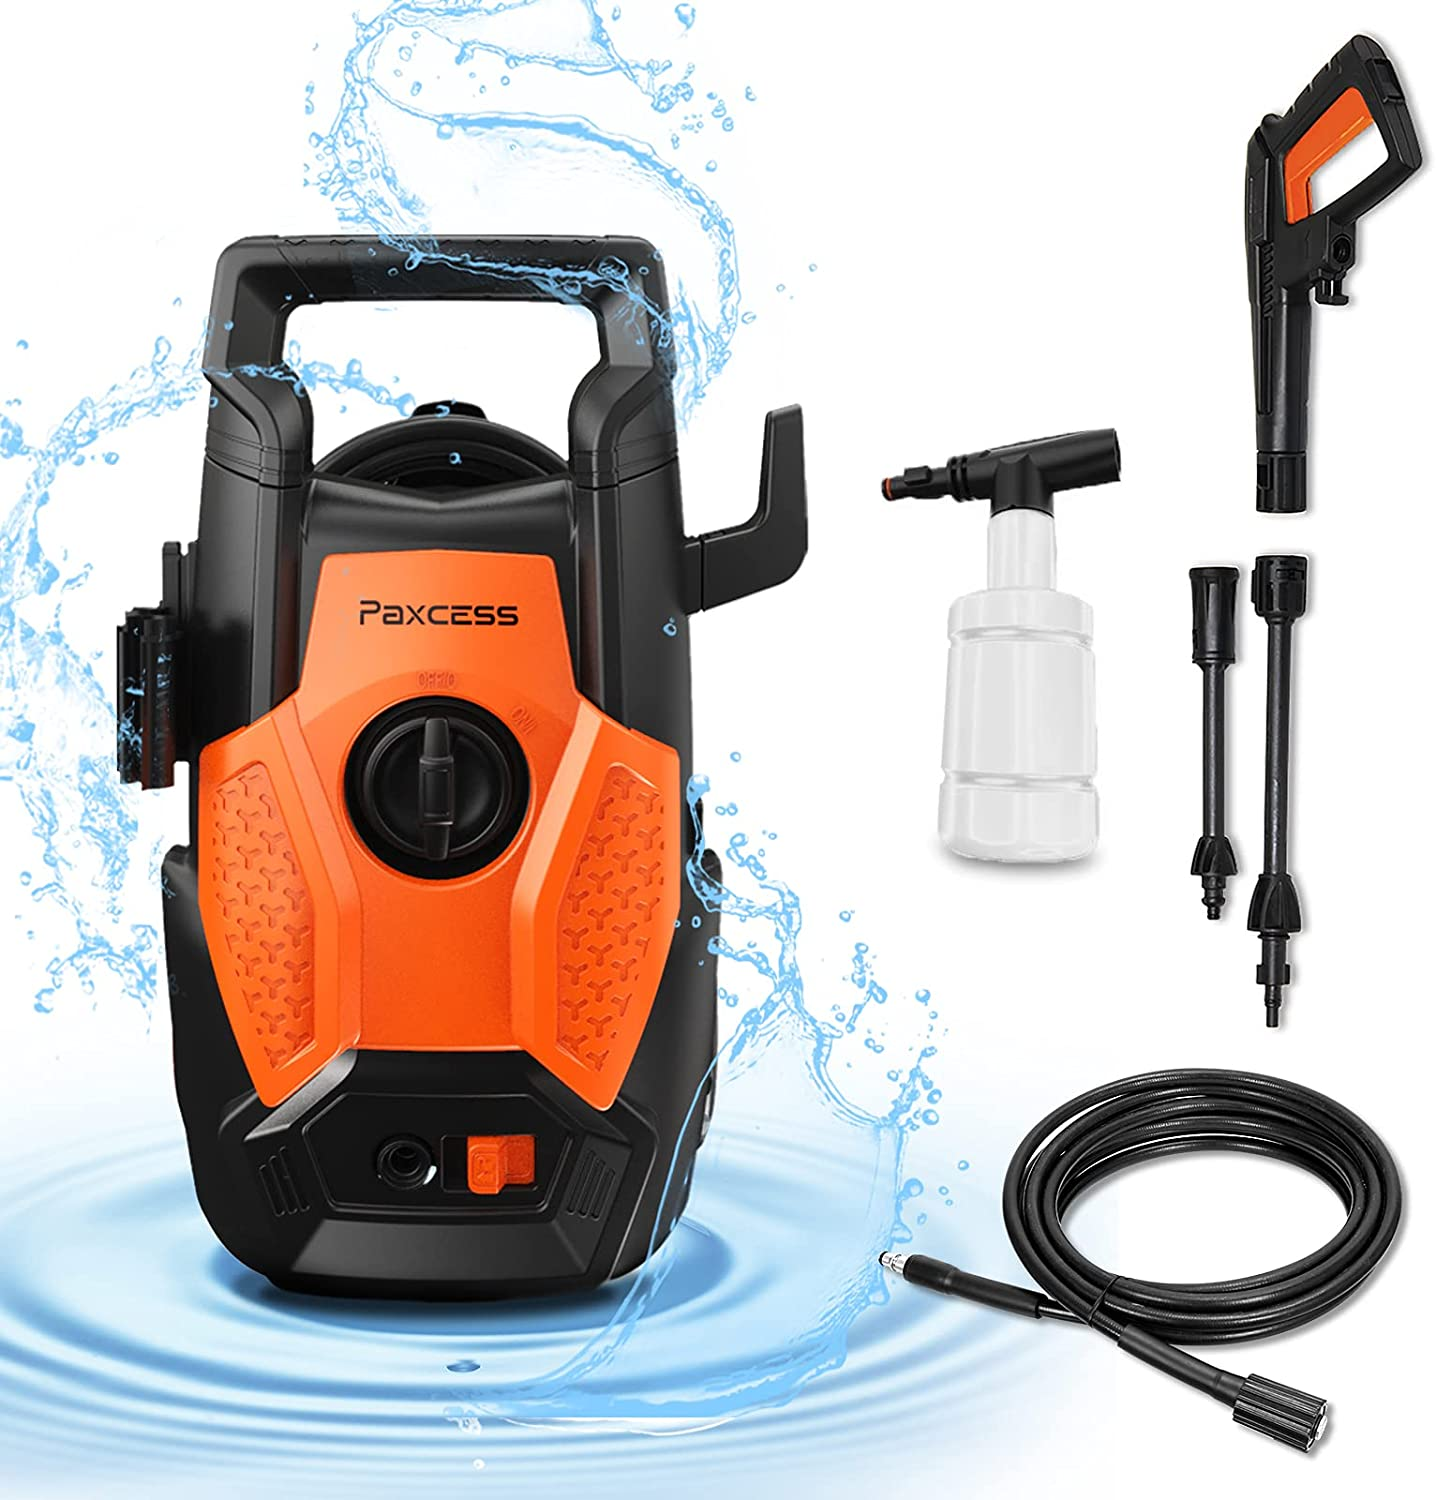 Paxcess Portable Pressure 5 ☆ popular Washer Wash Car Power Ranking TOP14 Electric